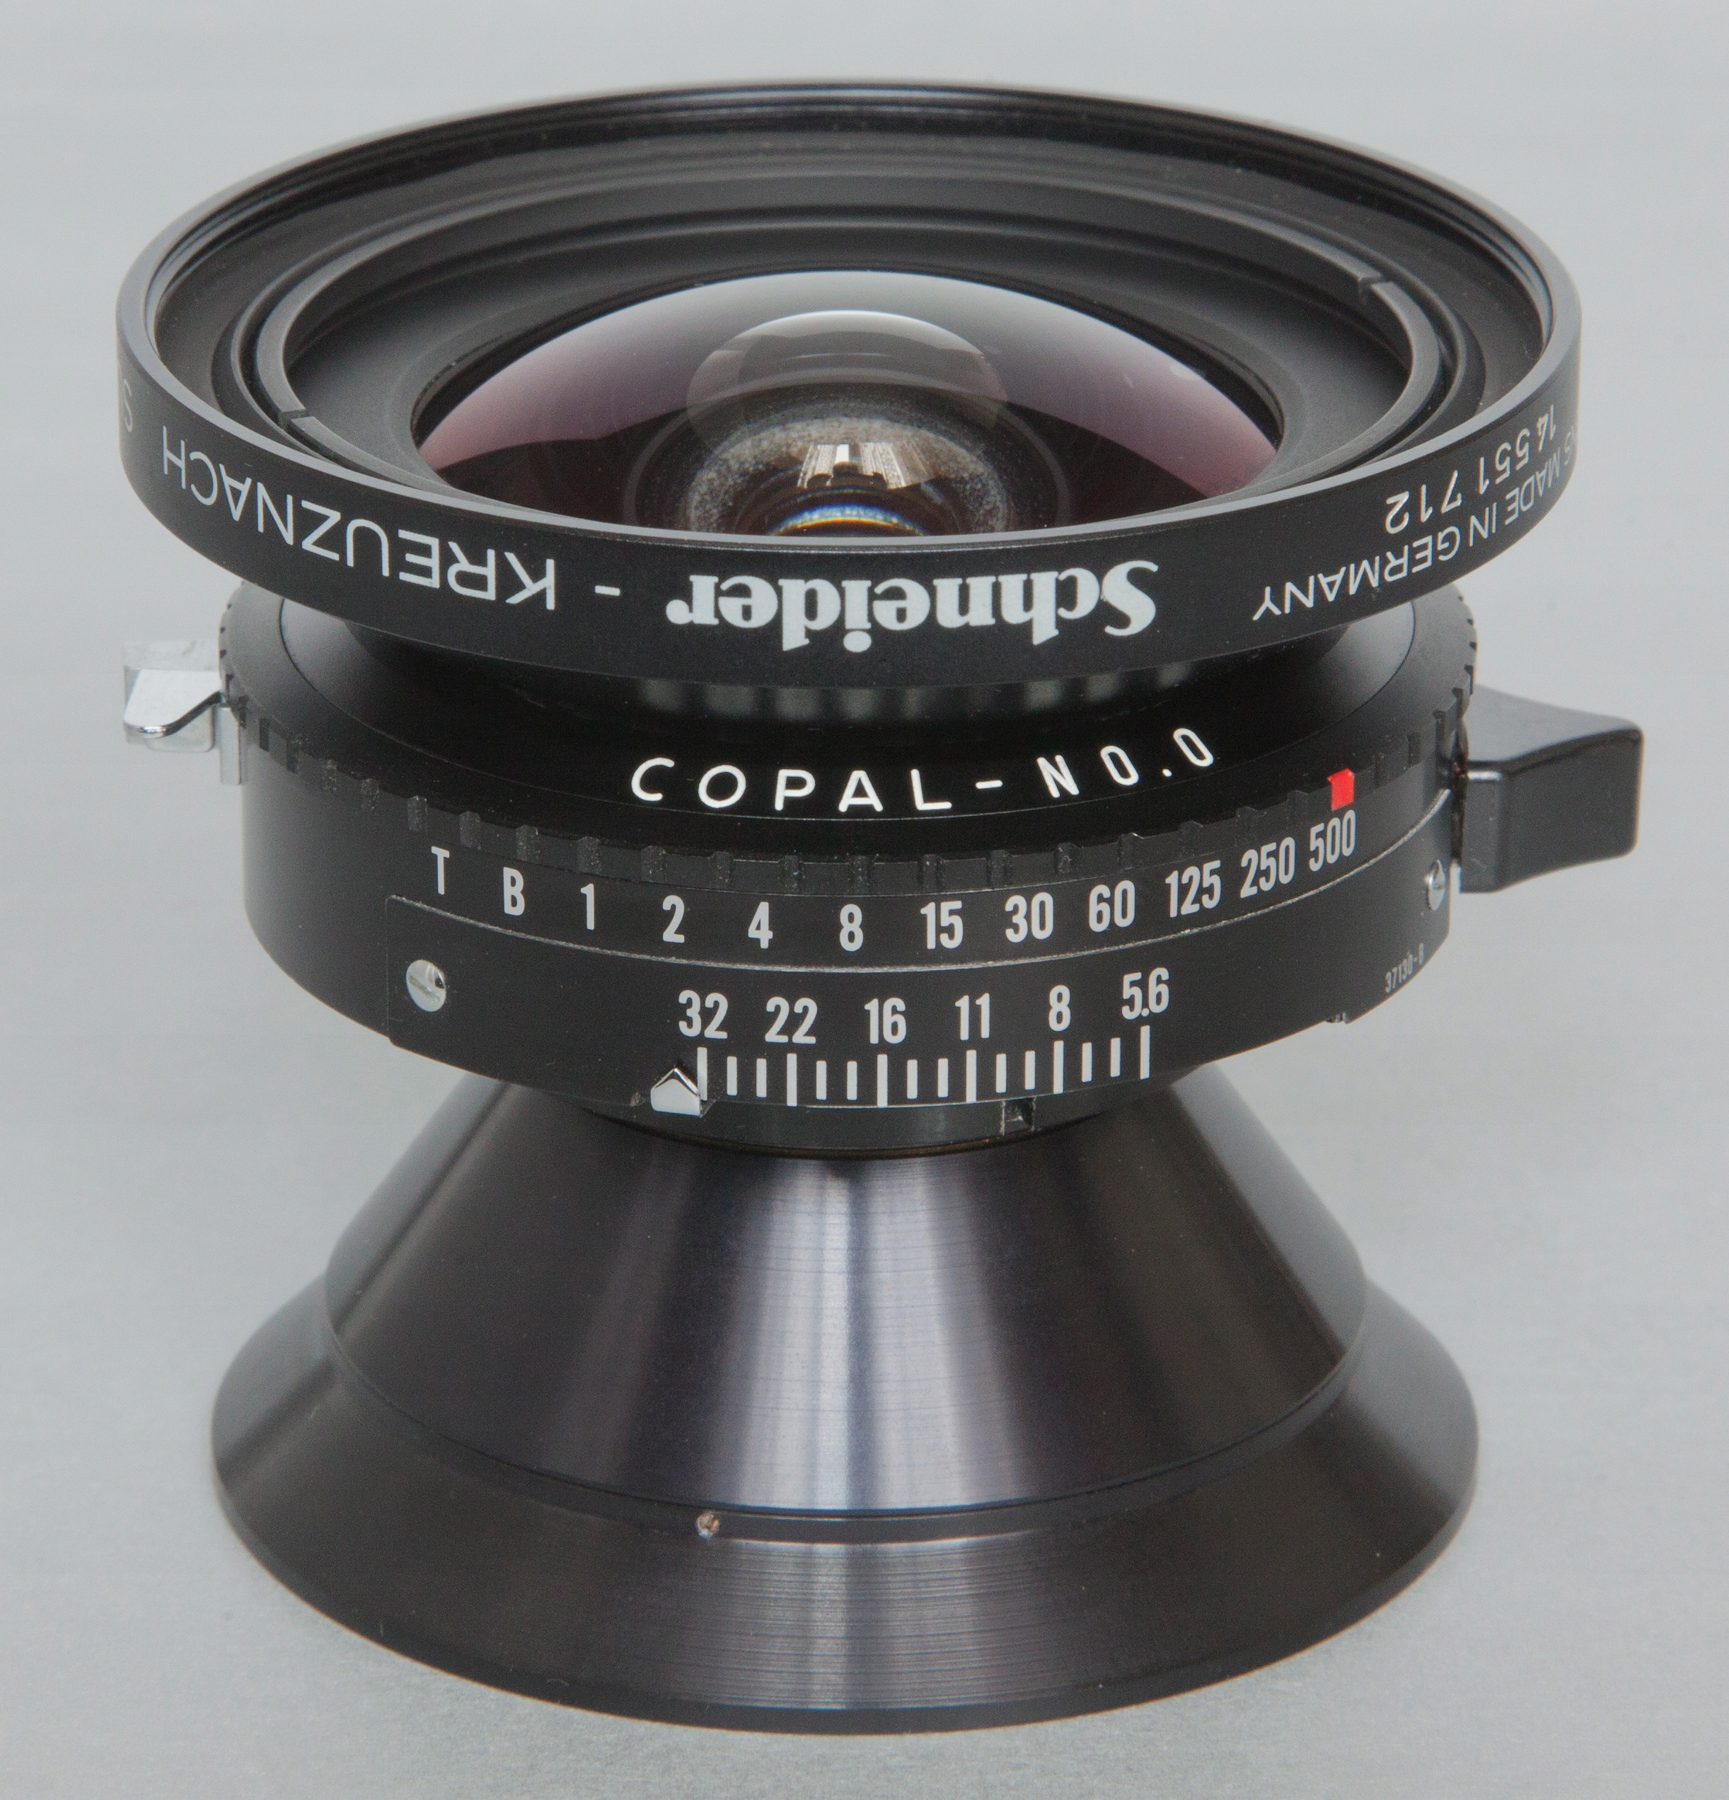 Ultra szeroki Super-Angulon 47mm/5,6 XL 120st. 4x5